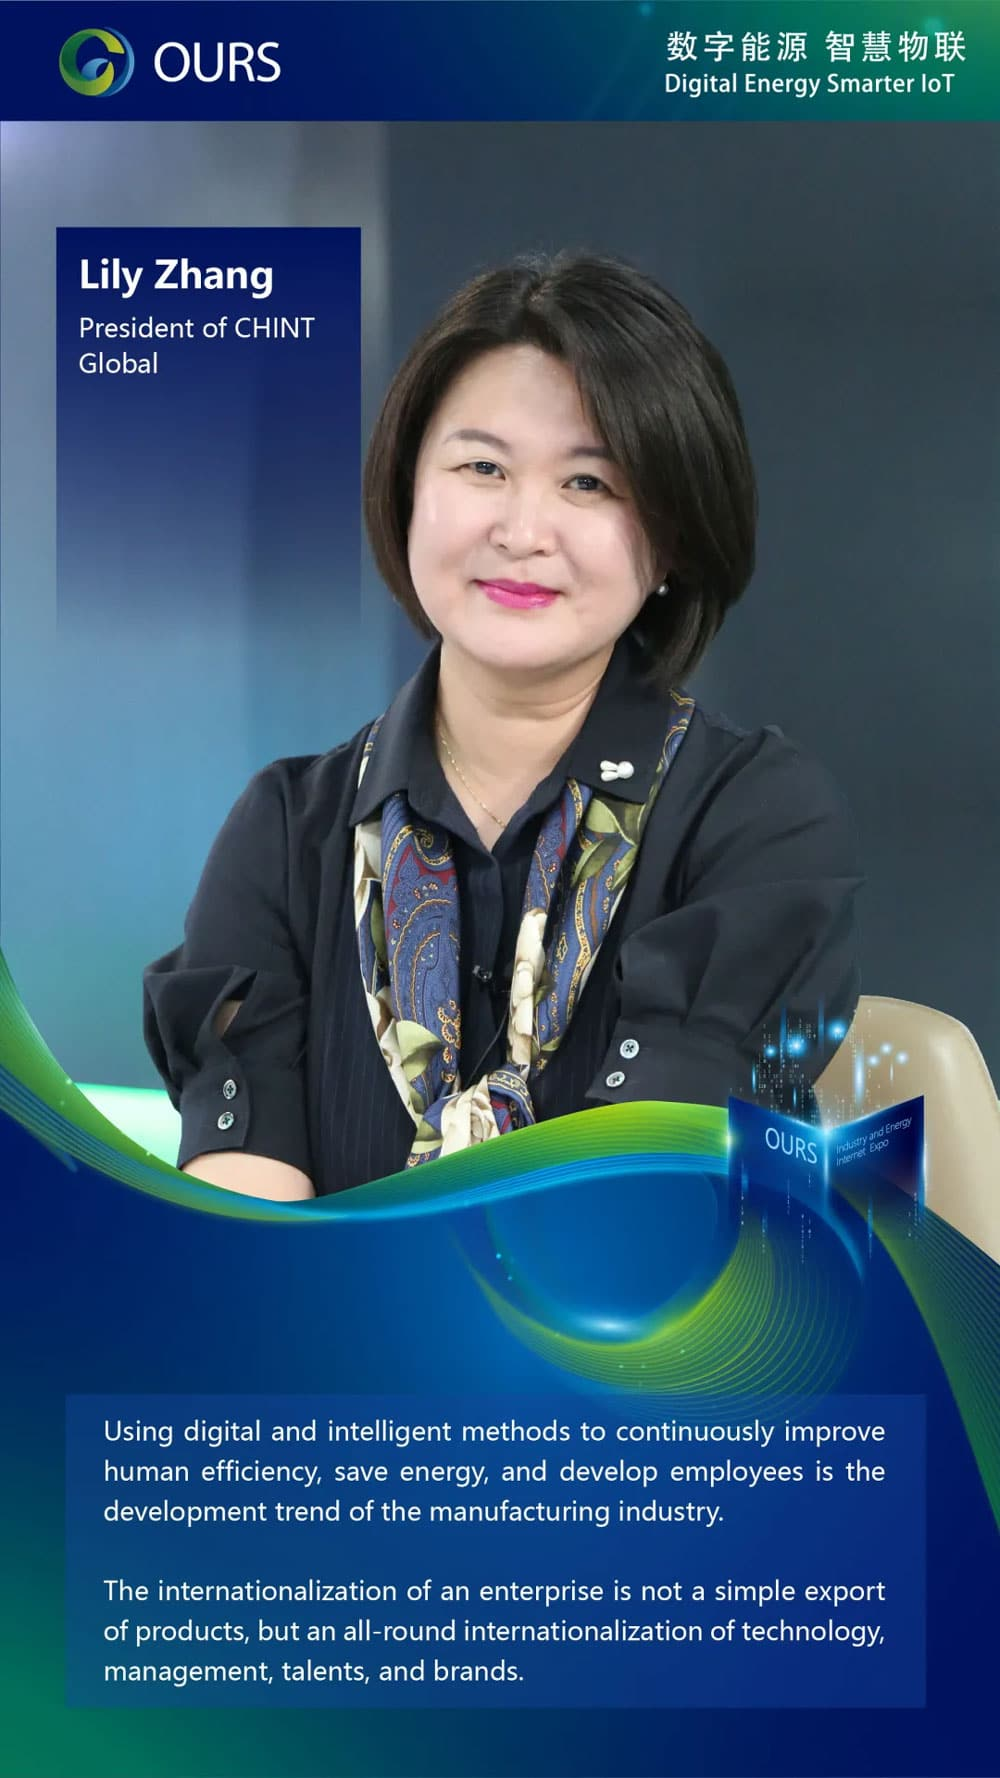 Interview to President of CHINT Global